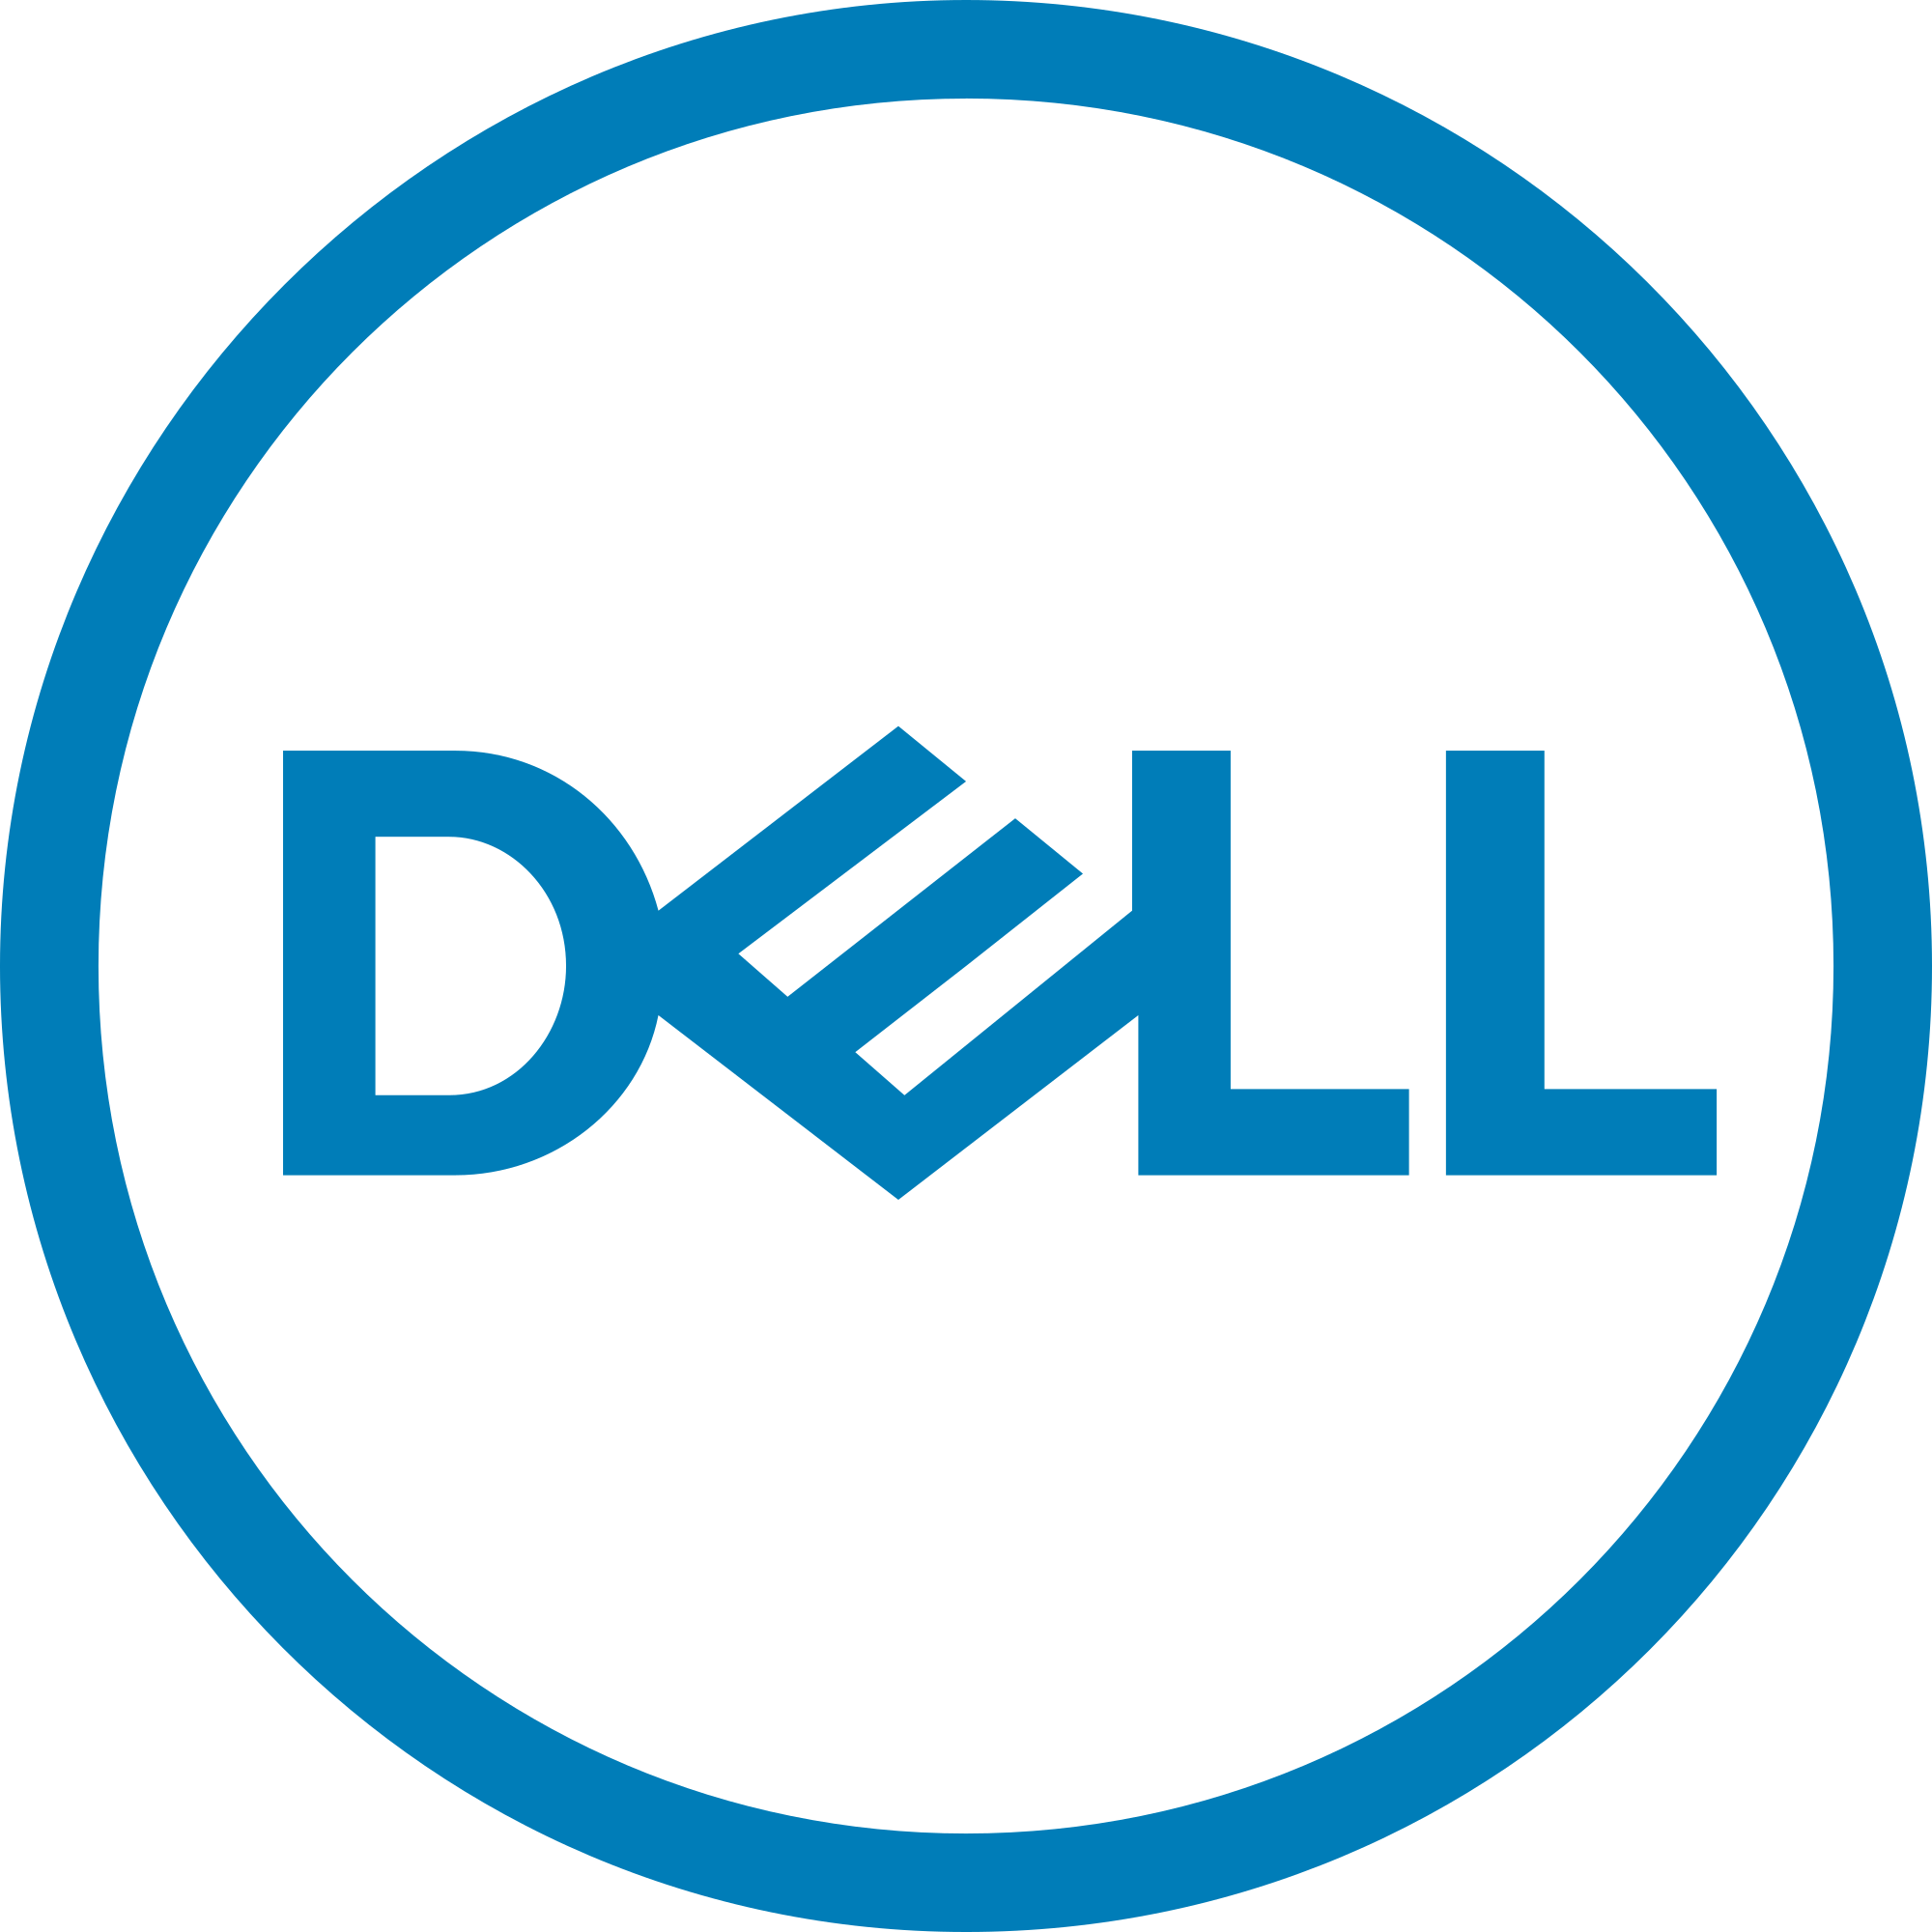 Dell_logo_2016.svg